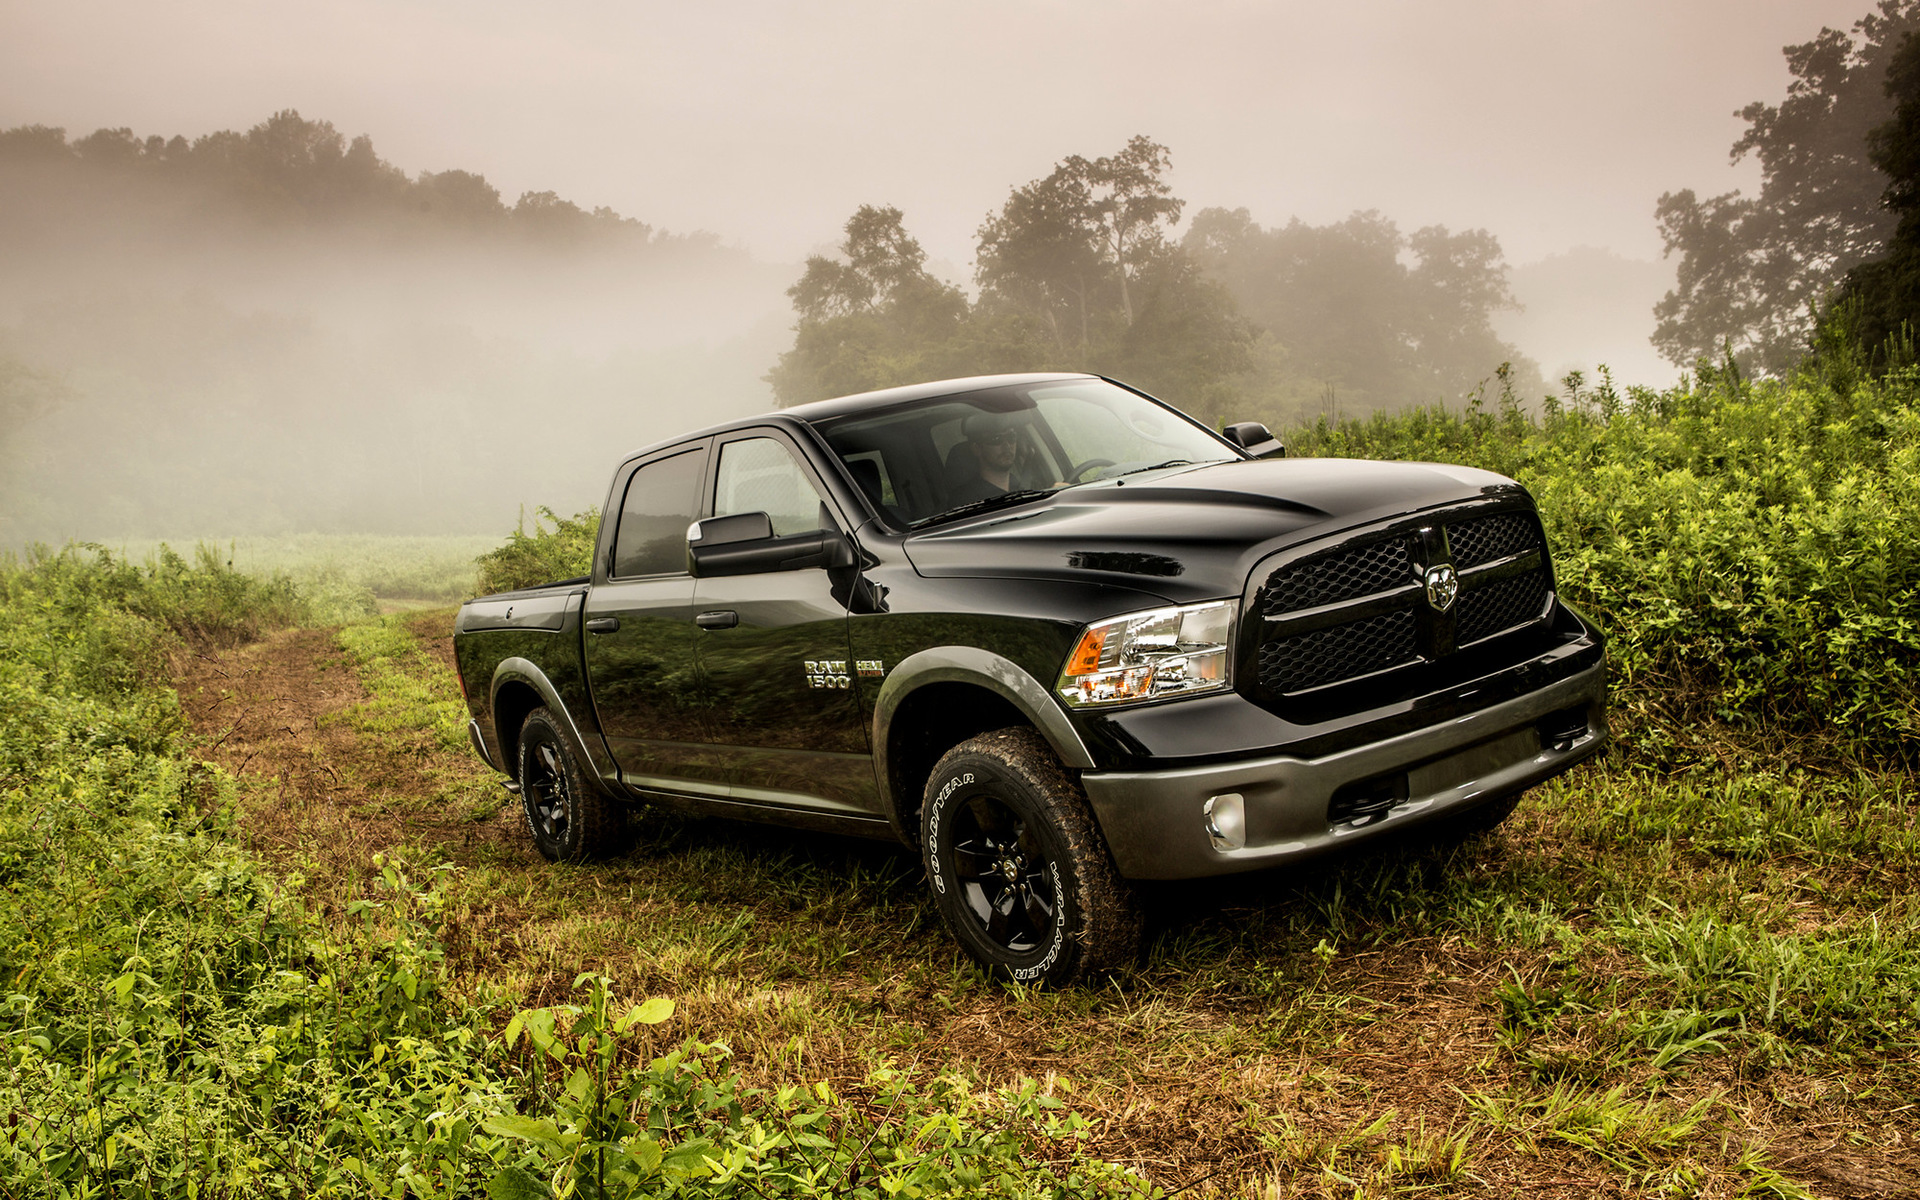 2013 Ram 1500 Outdoorsman Crew Cab Wallpapers And Hd